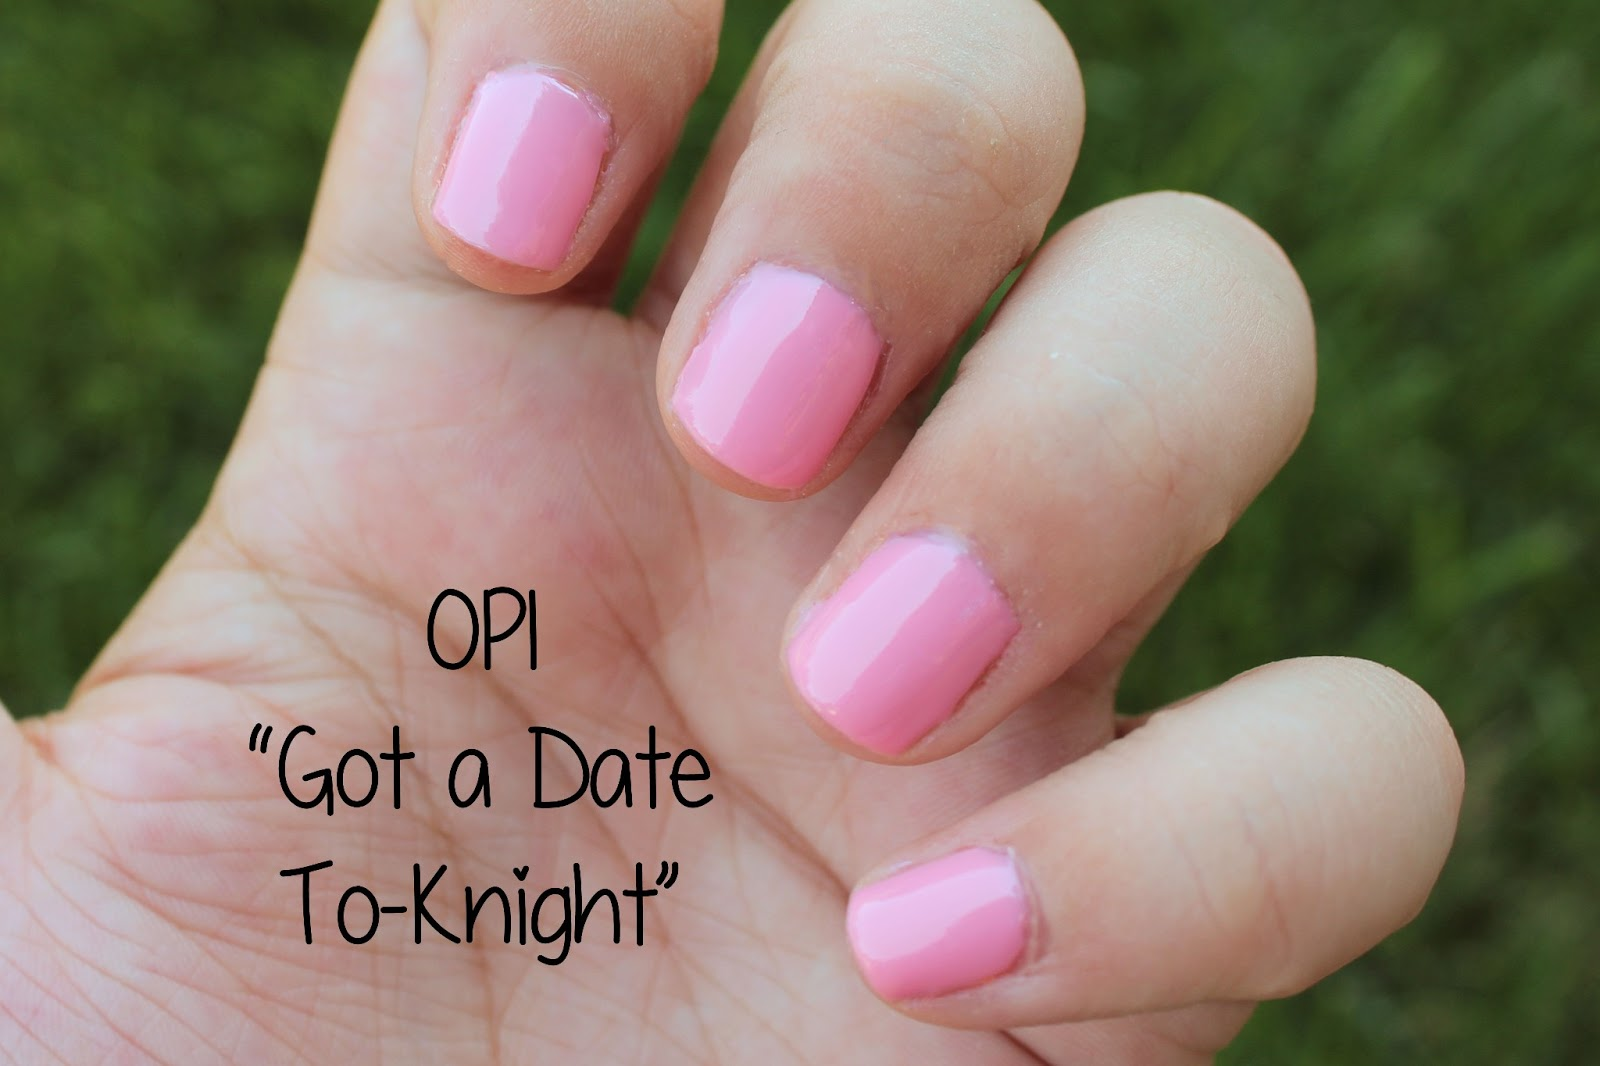 Opi got a date to knight